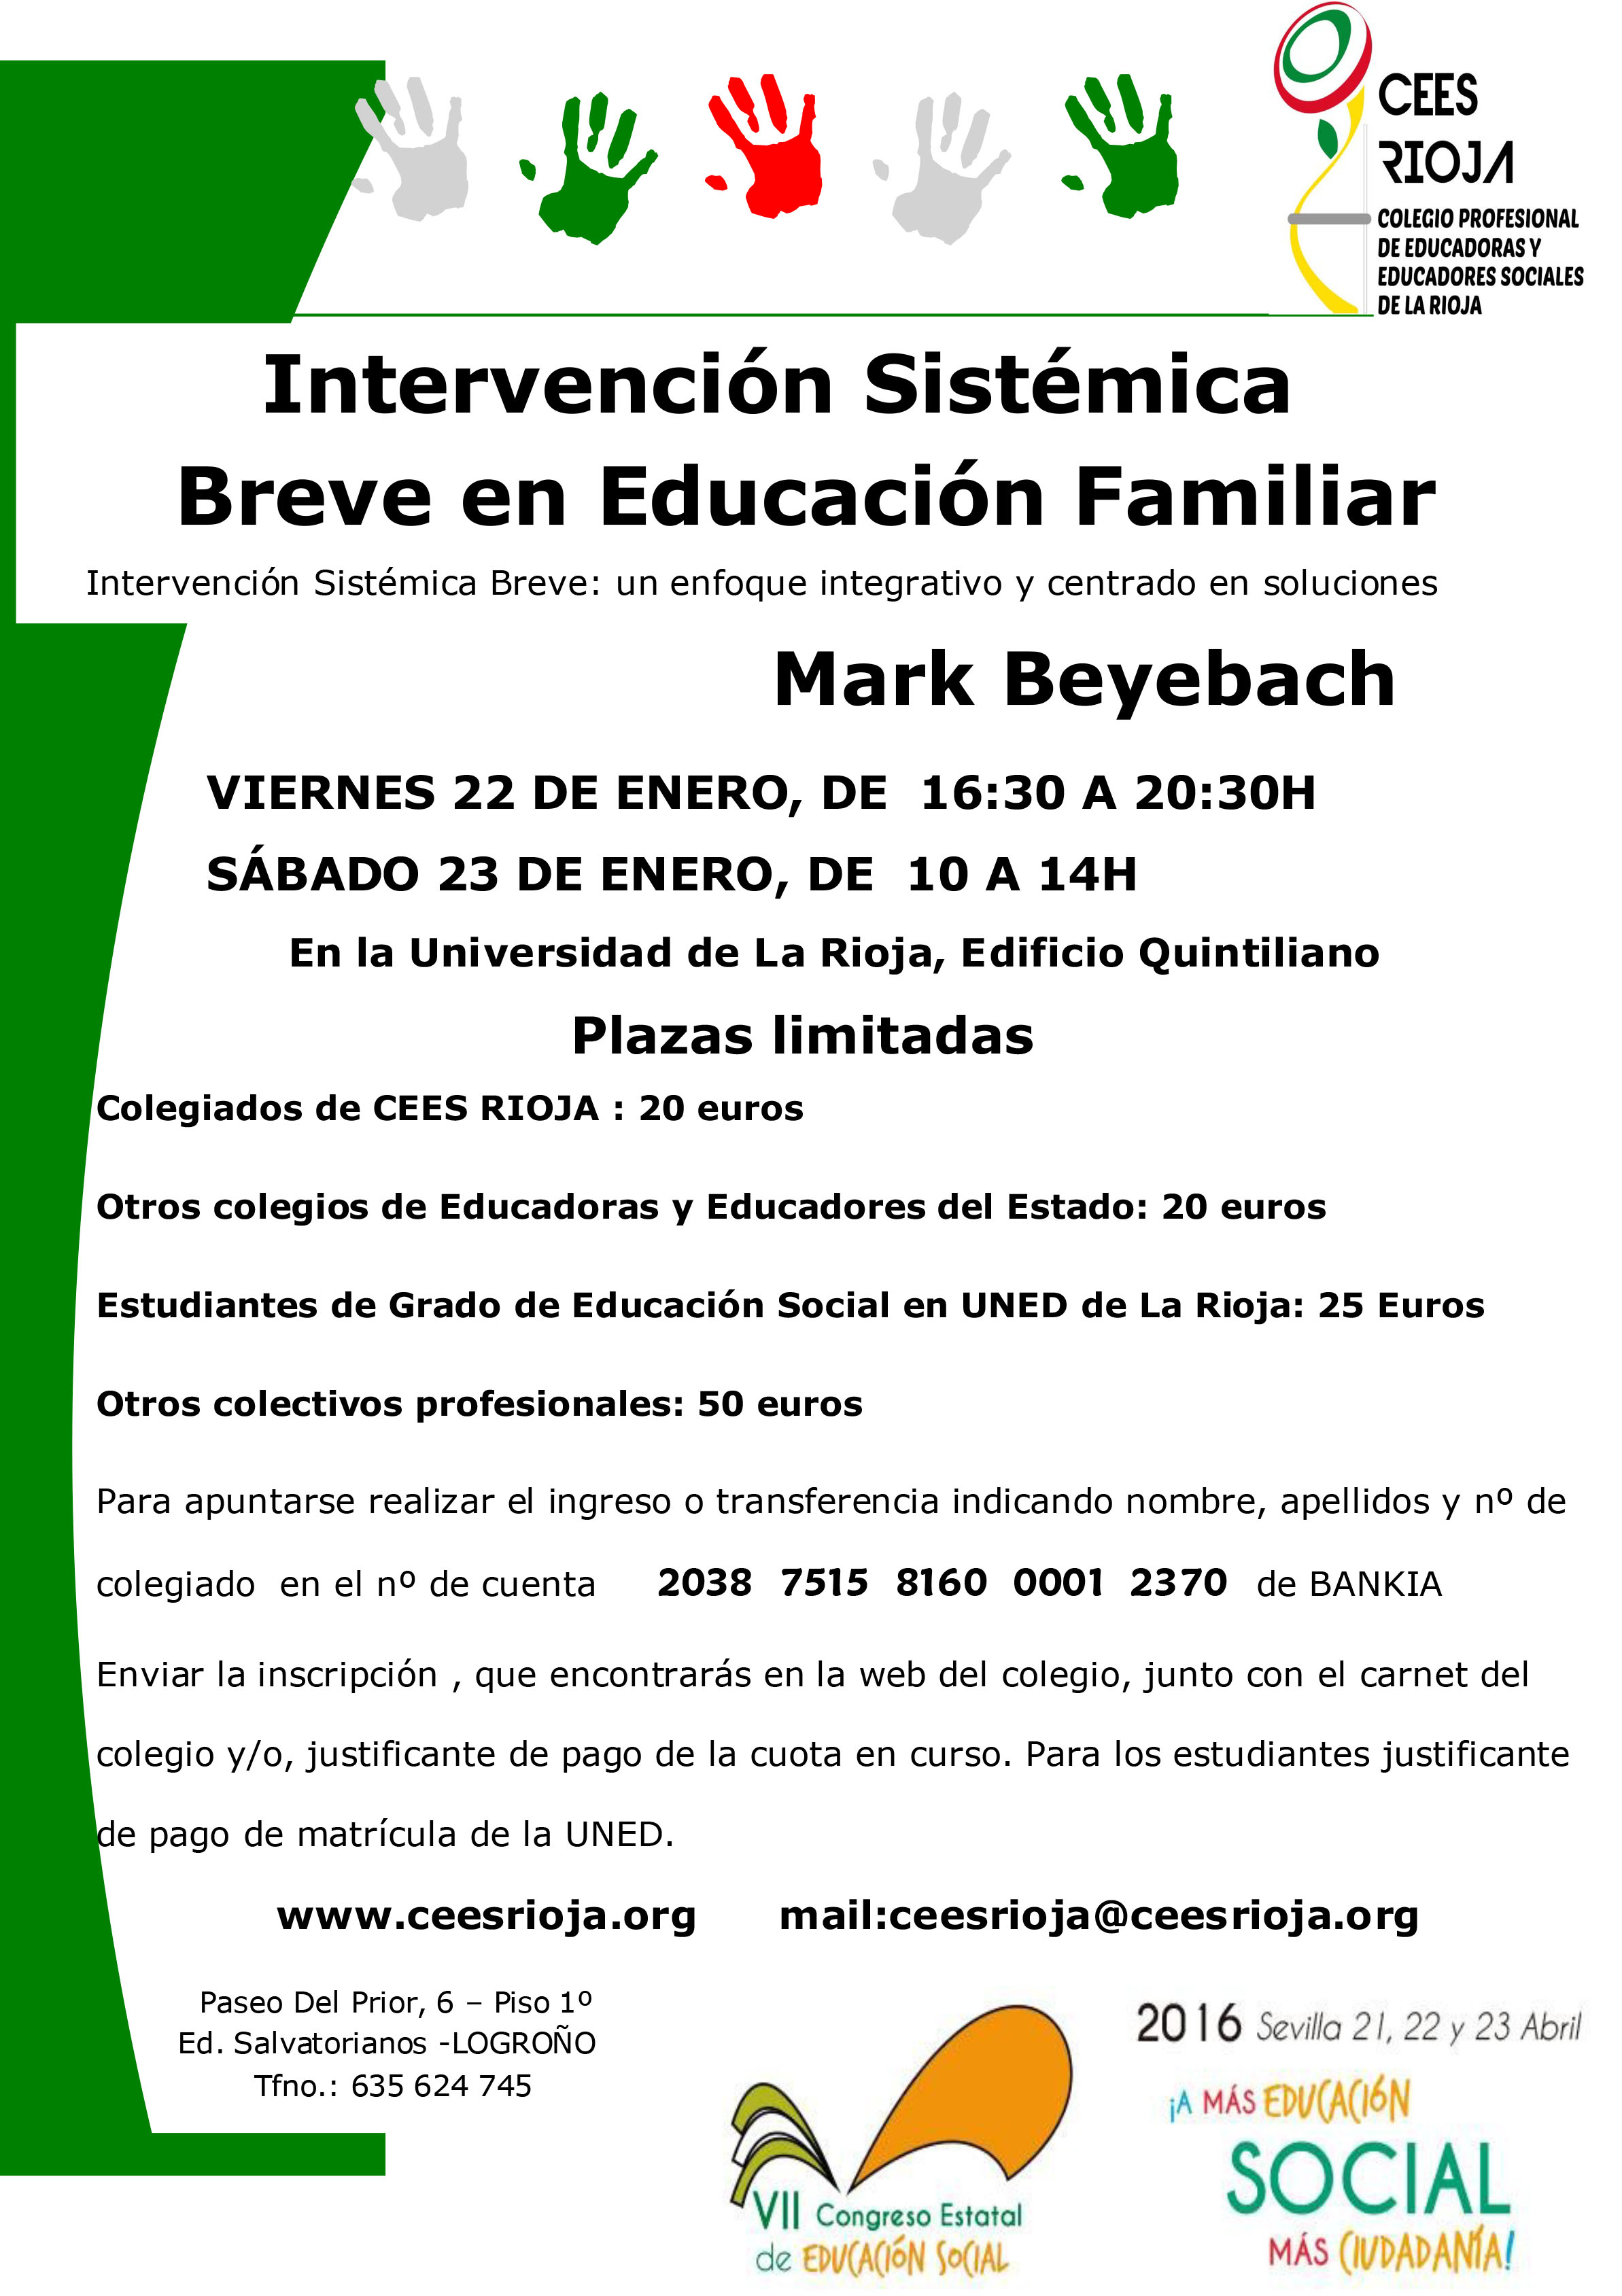 INTERVENCION SISTÉMICA BREVE EN EDUCACIÓN FAMILIAR-1